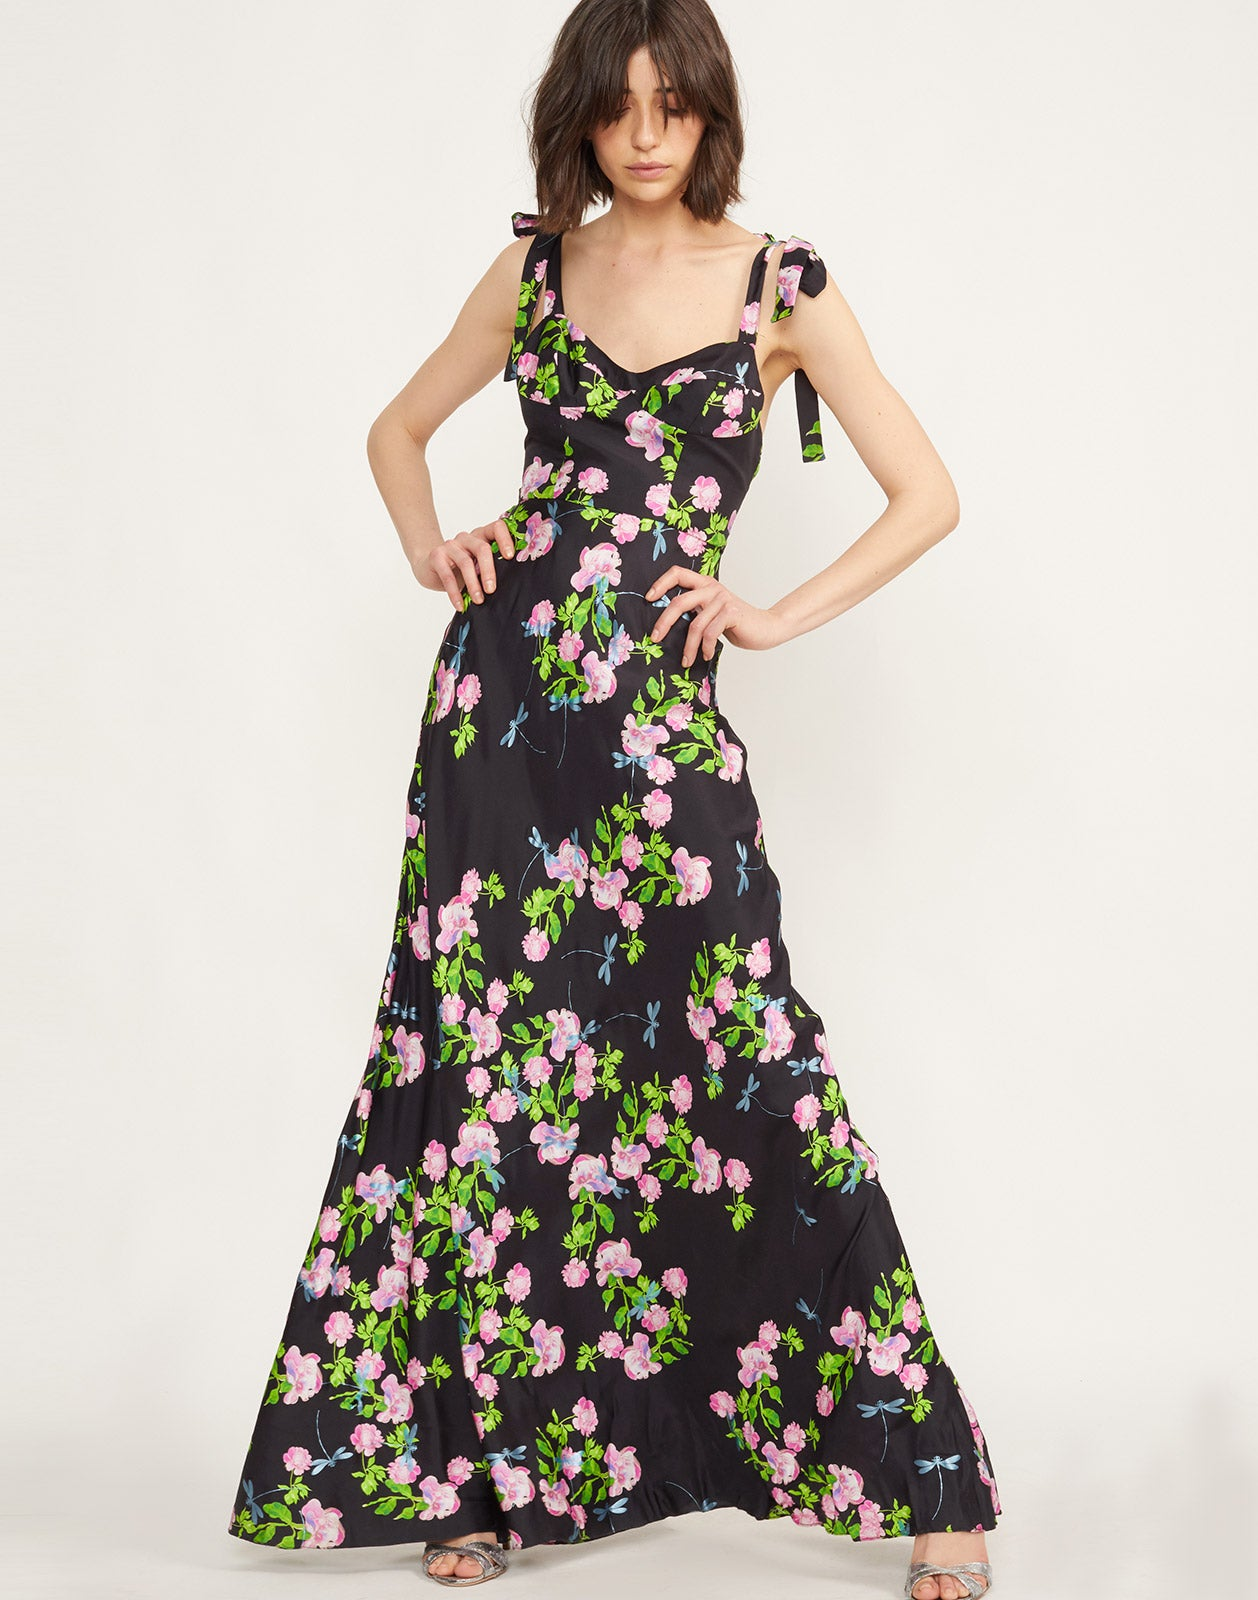 Full view of model wearing Ten Rose Maxi Dress.